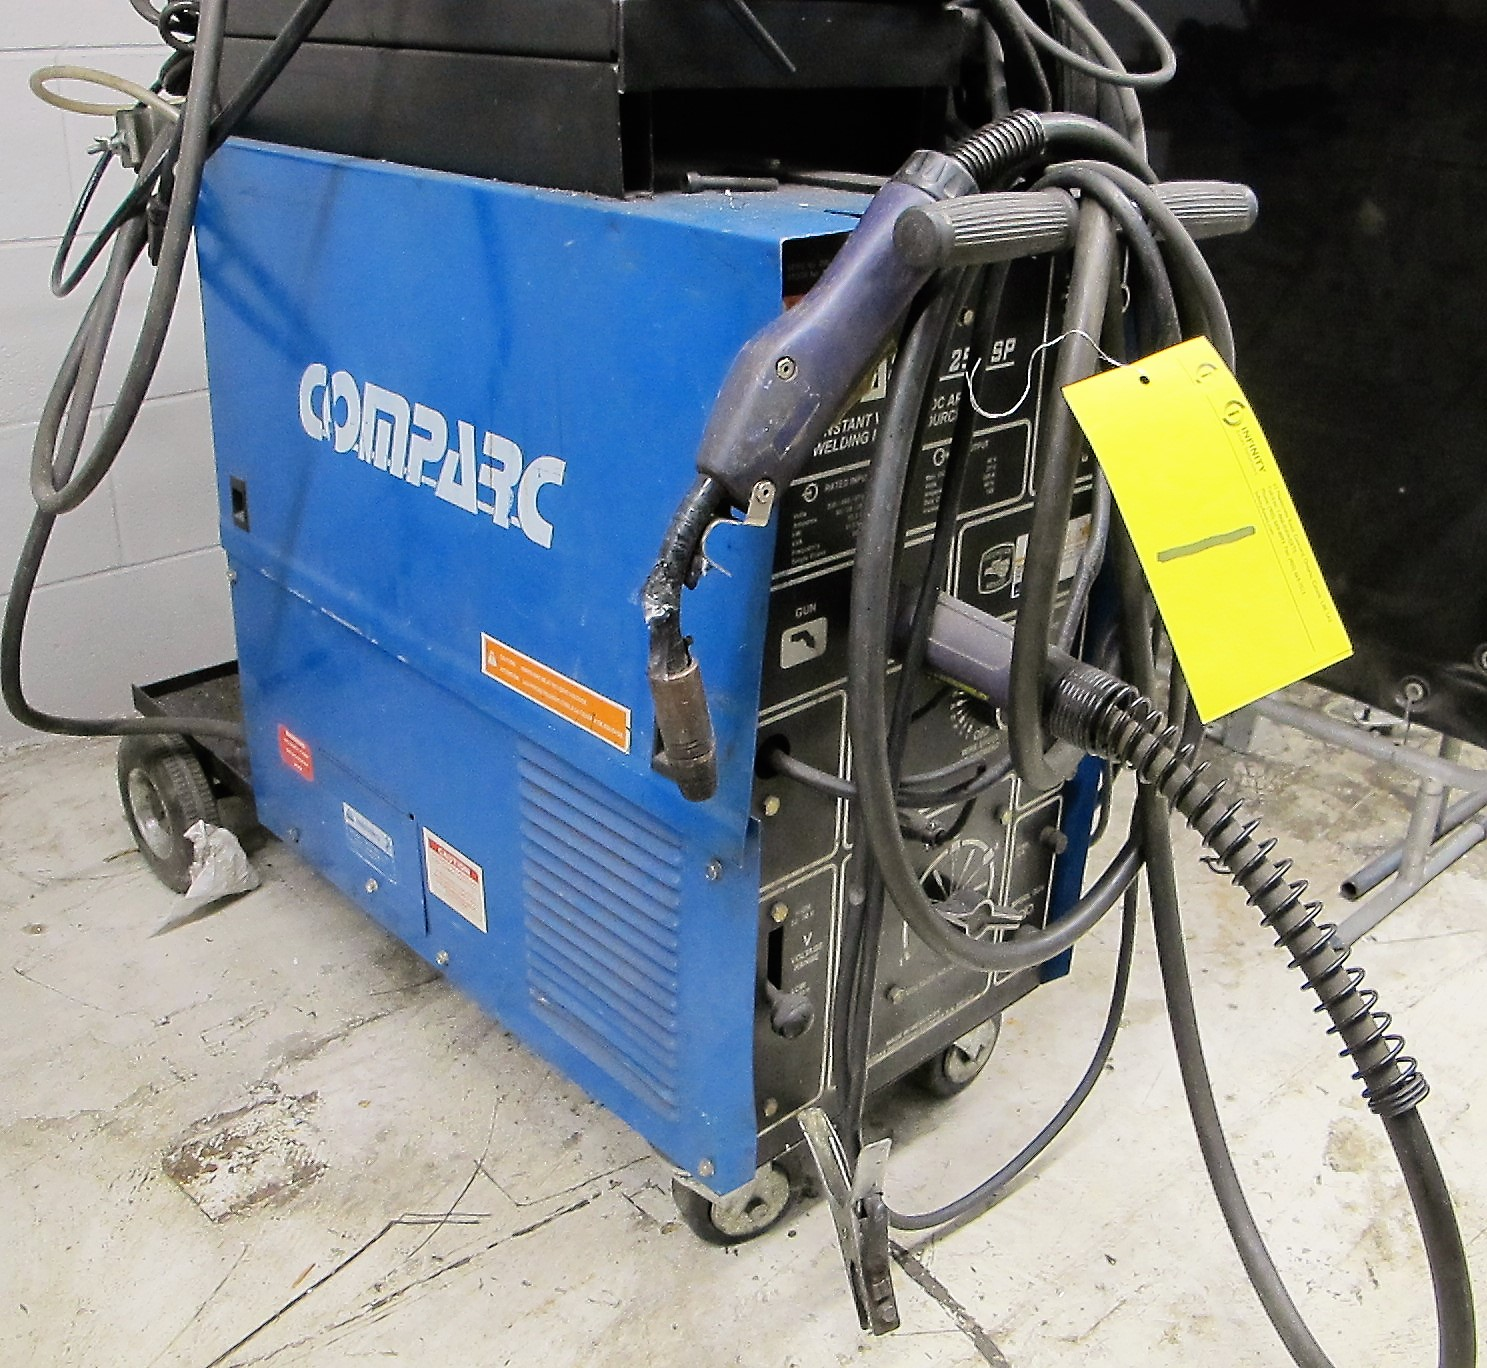 COMPARC 250 SP MIG WELDER W/CABLES, GUN AND CART - Image 2 of 3